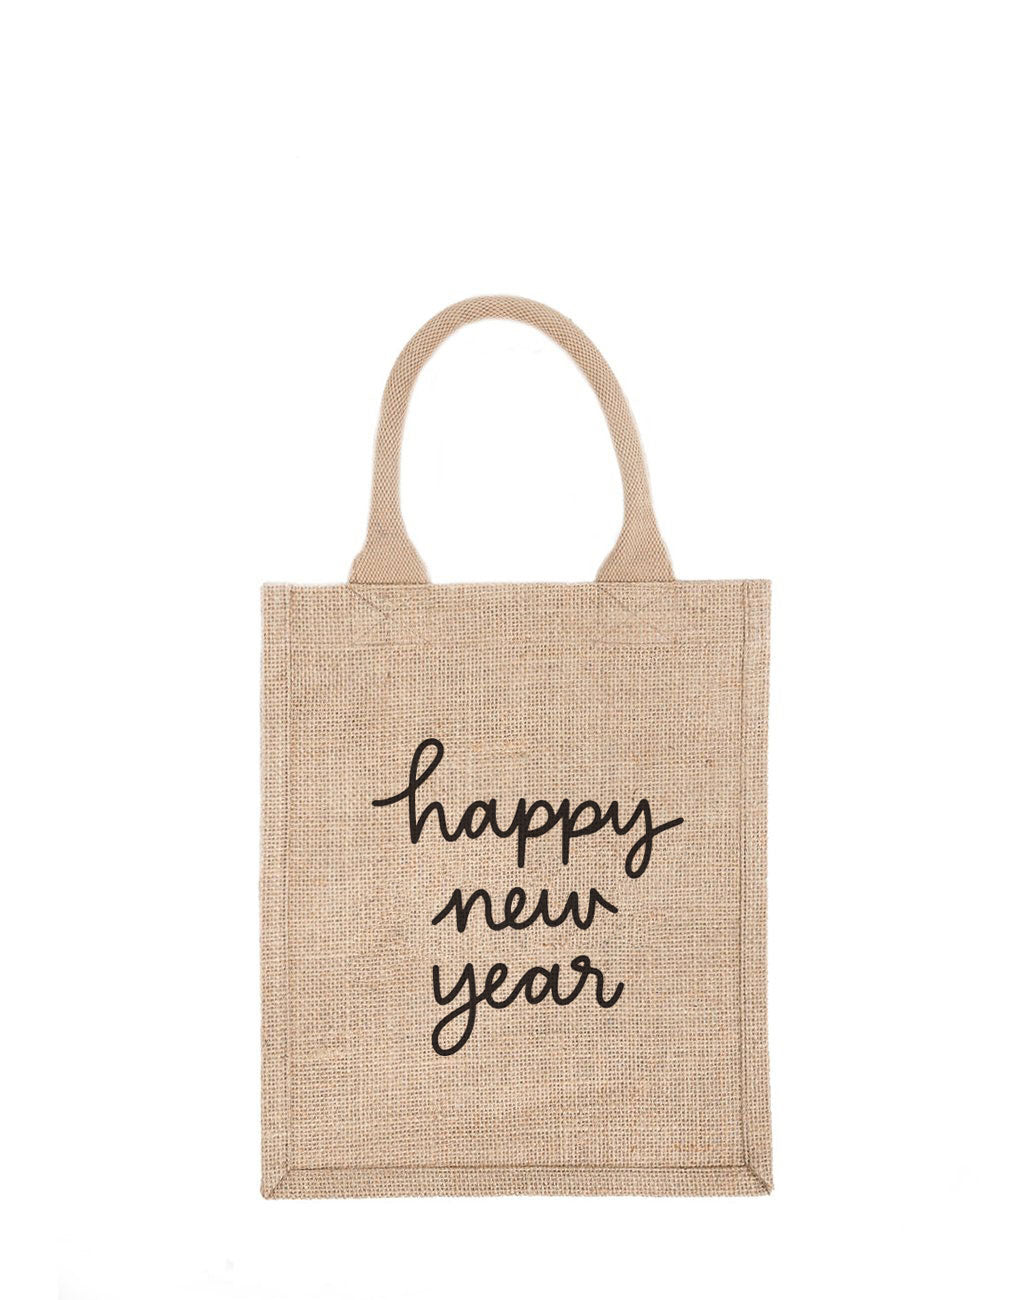 Medium Happy New Year Reusable Gift Tote In Black Font | The Little Market